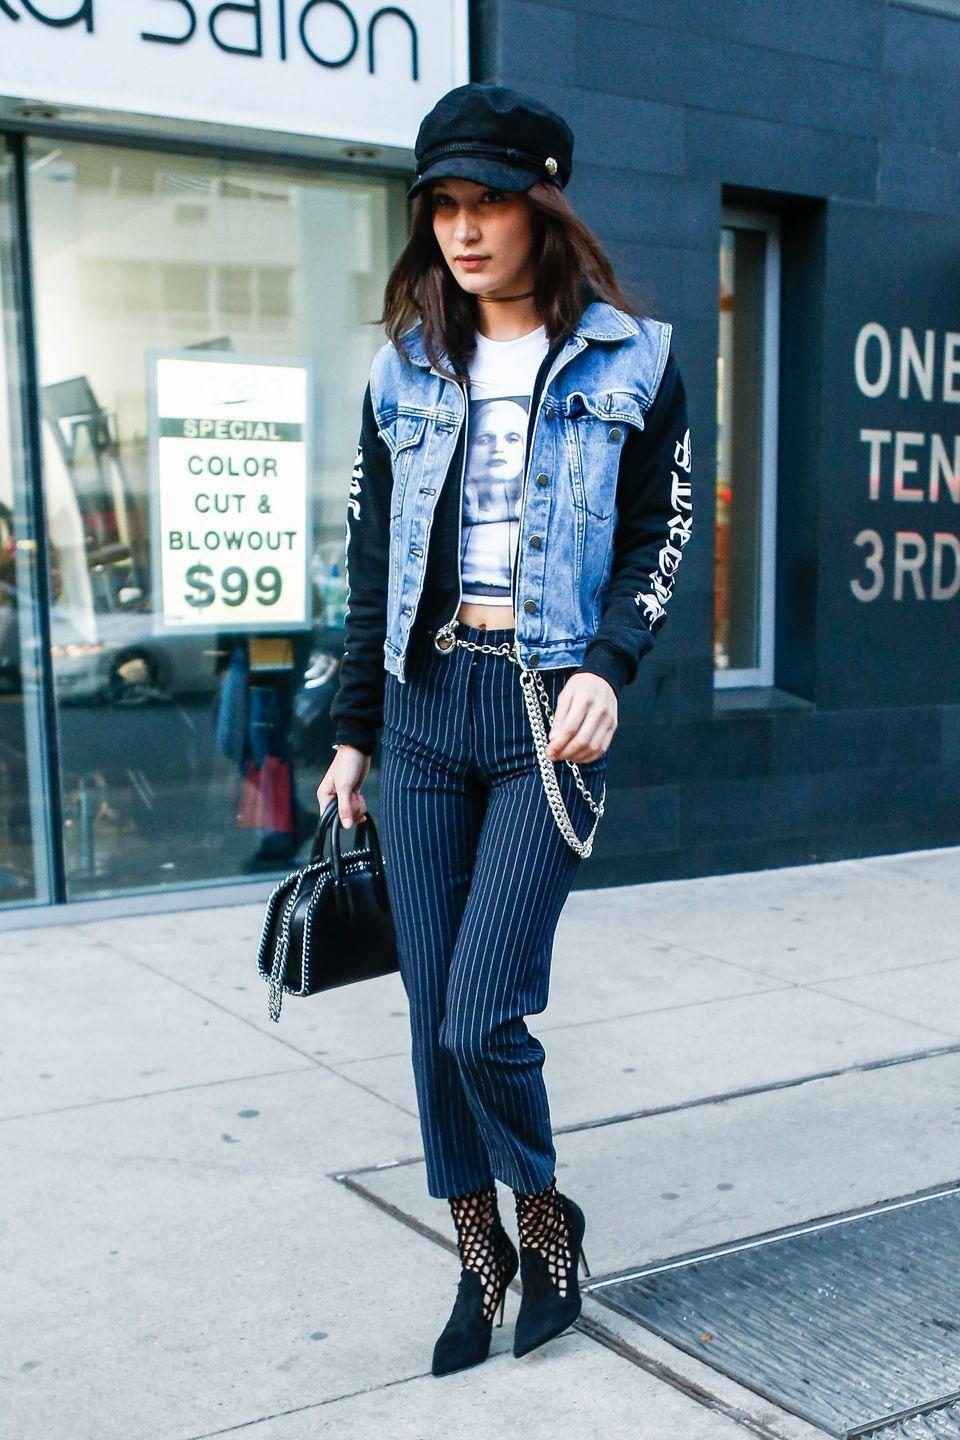 <p>Out in NYC wearing a denim vest over a zip-up sweatshirt and graphic tee, with pinstripe pants by MIAOU, a chain belt, black suede cut-out booties and a newsboy cap.</p>